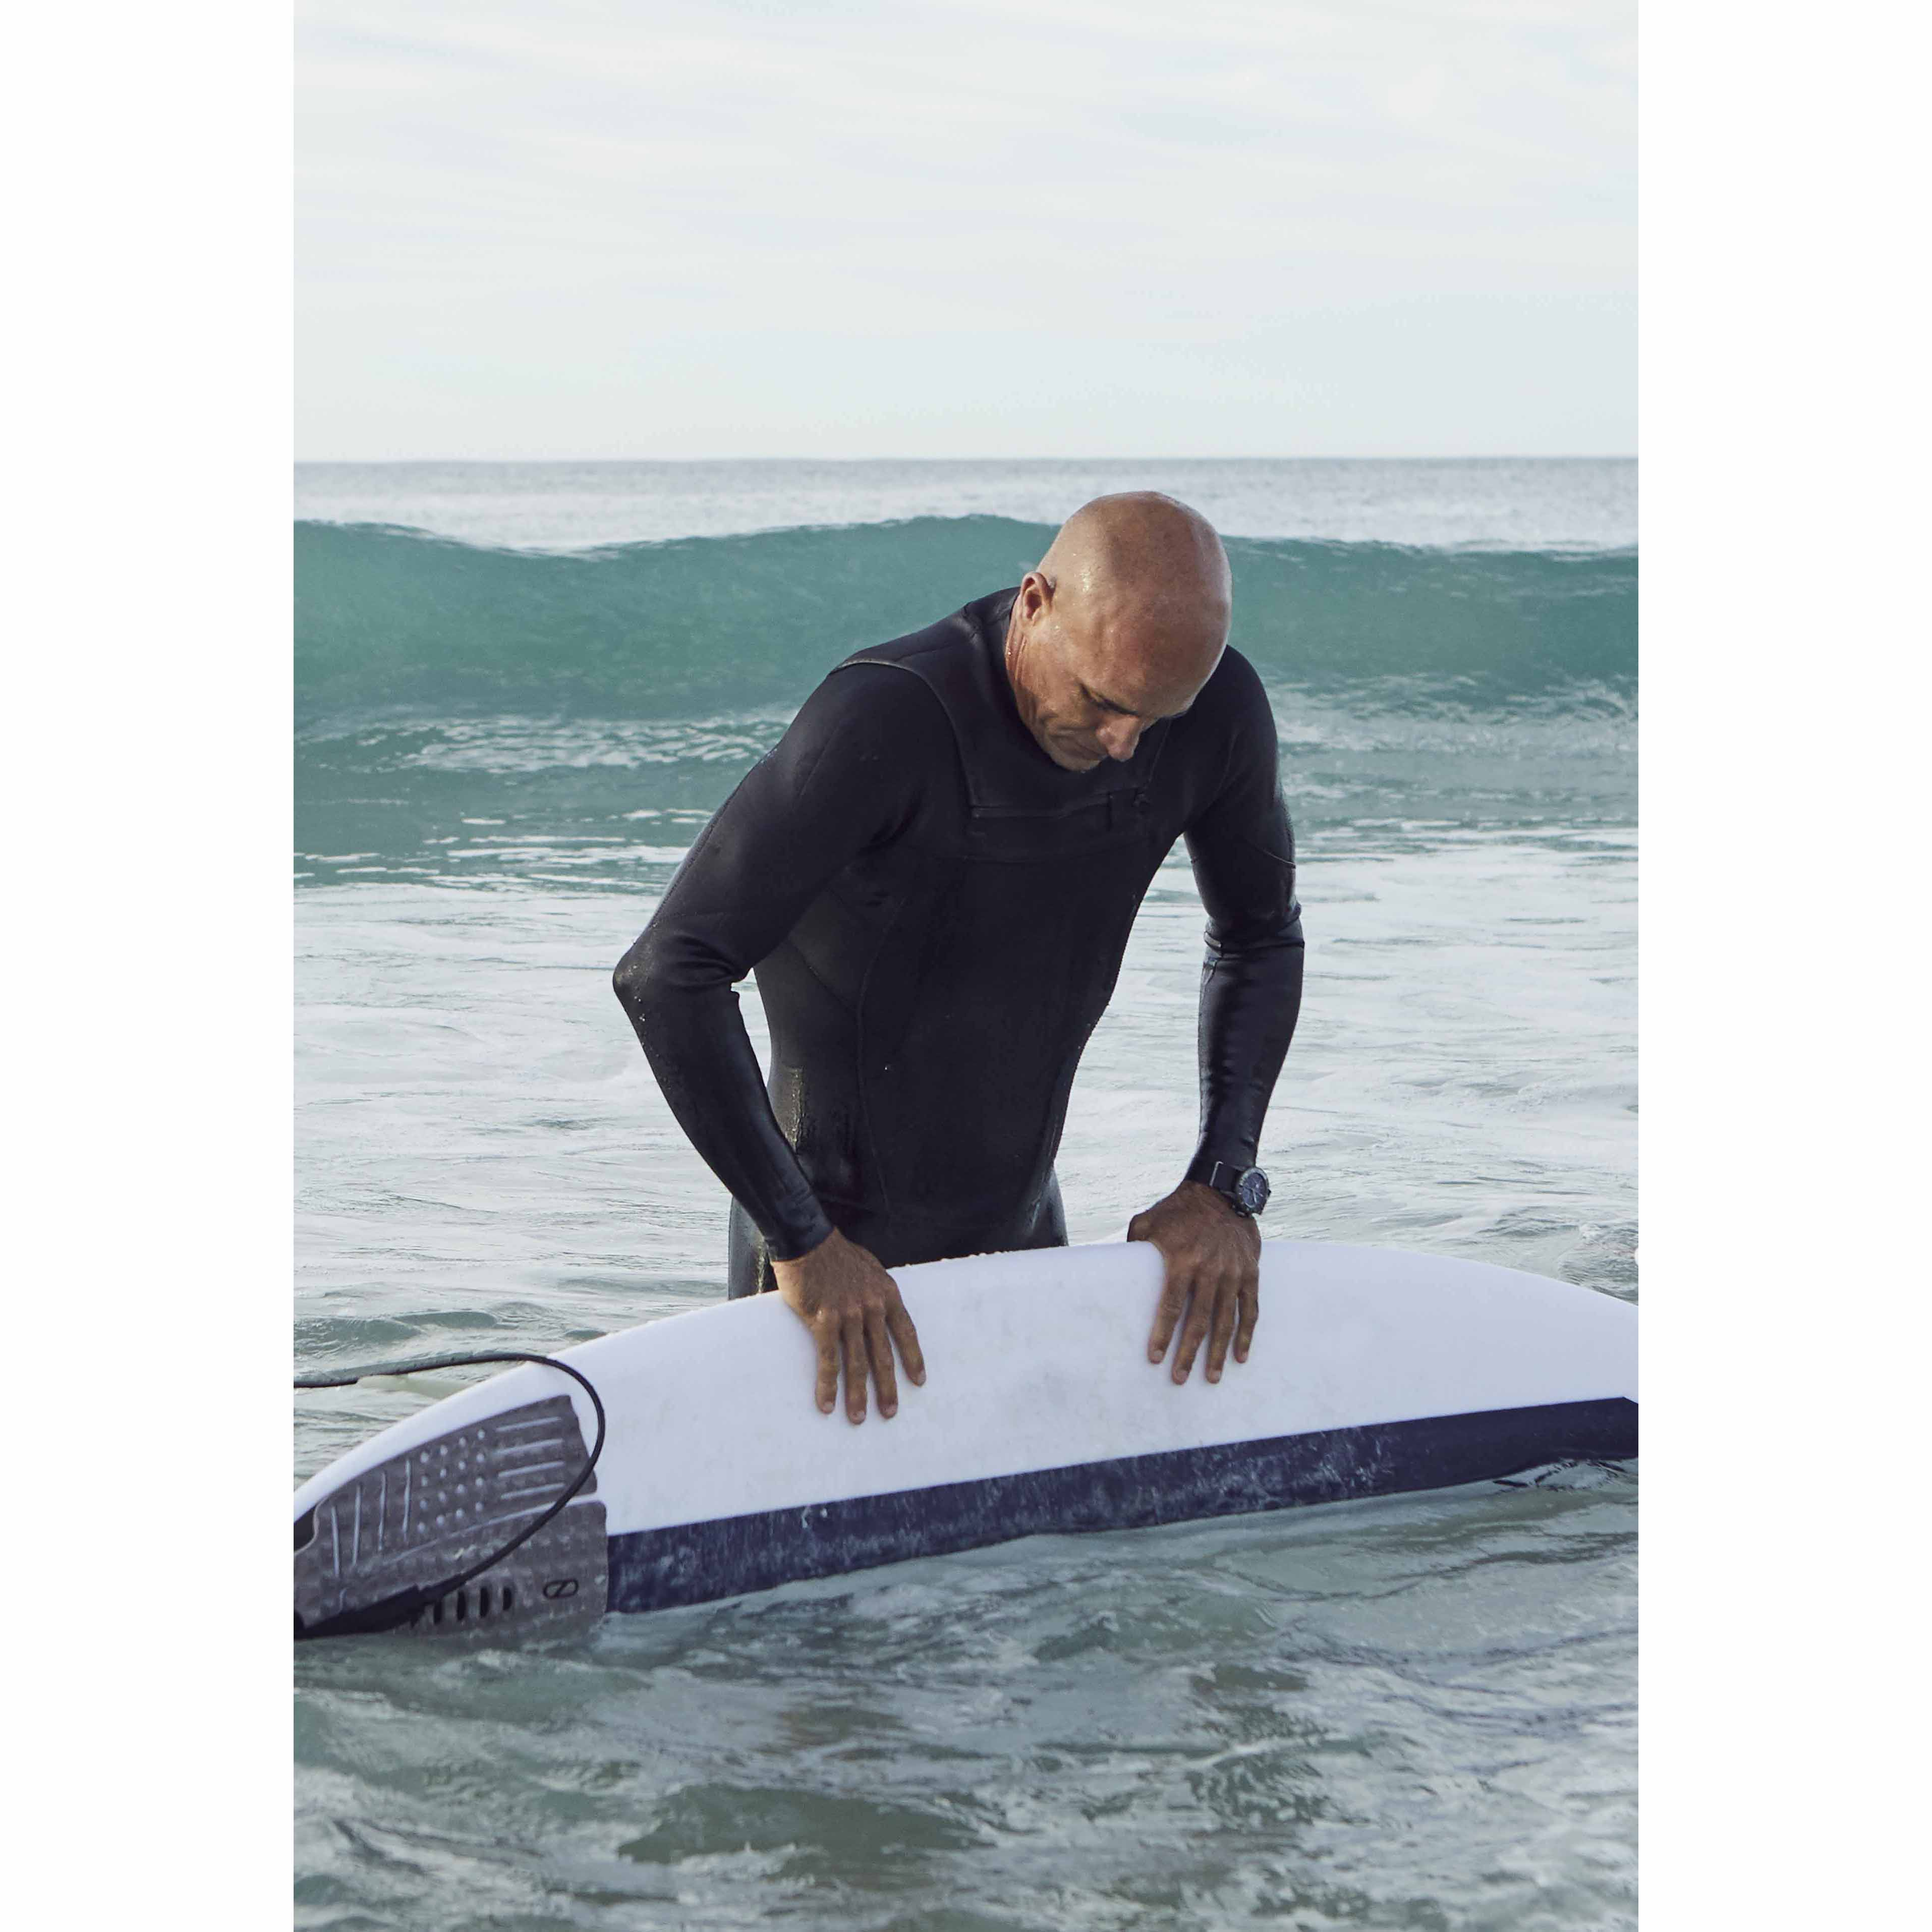 Breitling Surfers team member Kelly Slater in the Superocean Heritage II 44 Outerknown chronograph